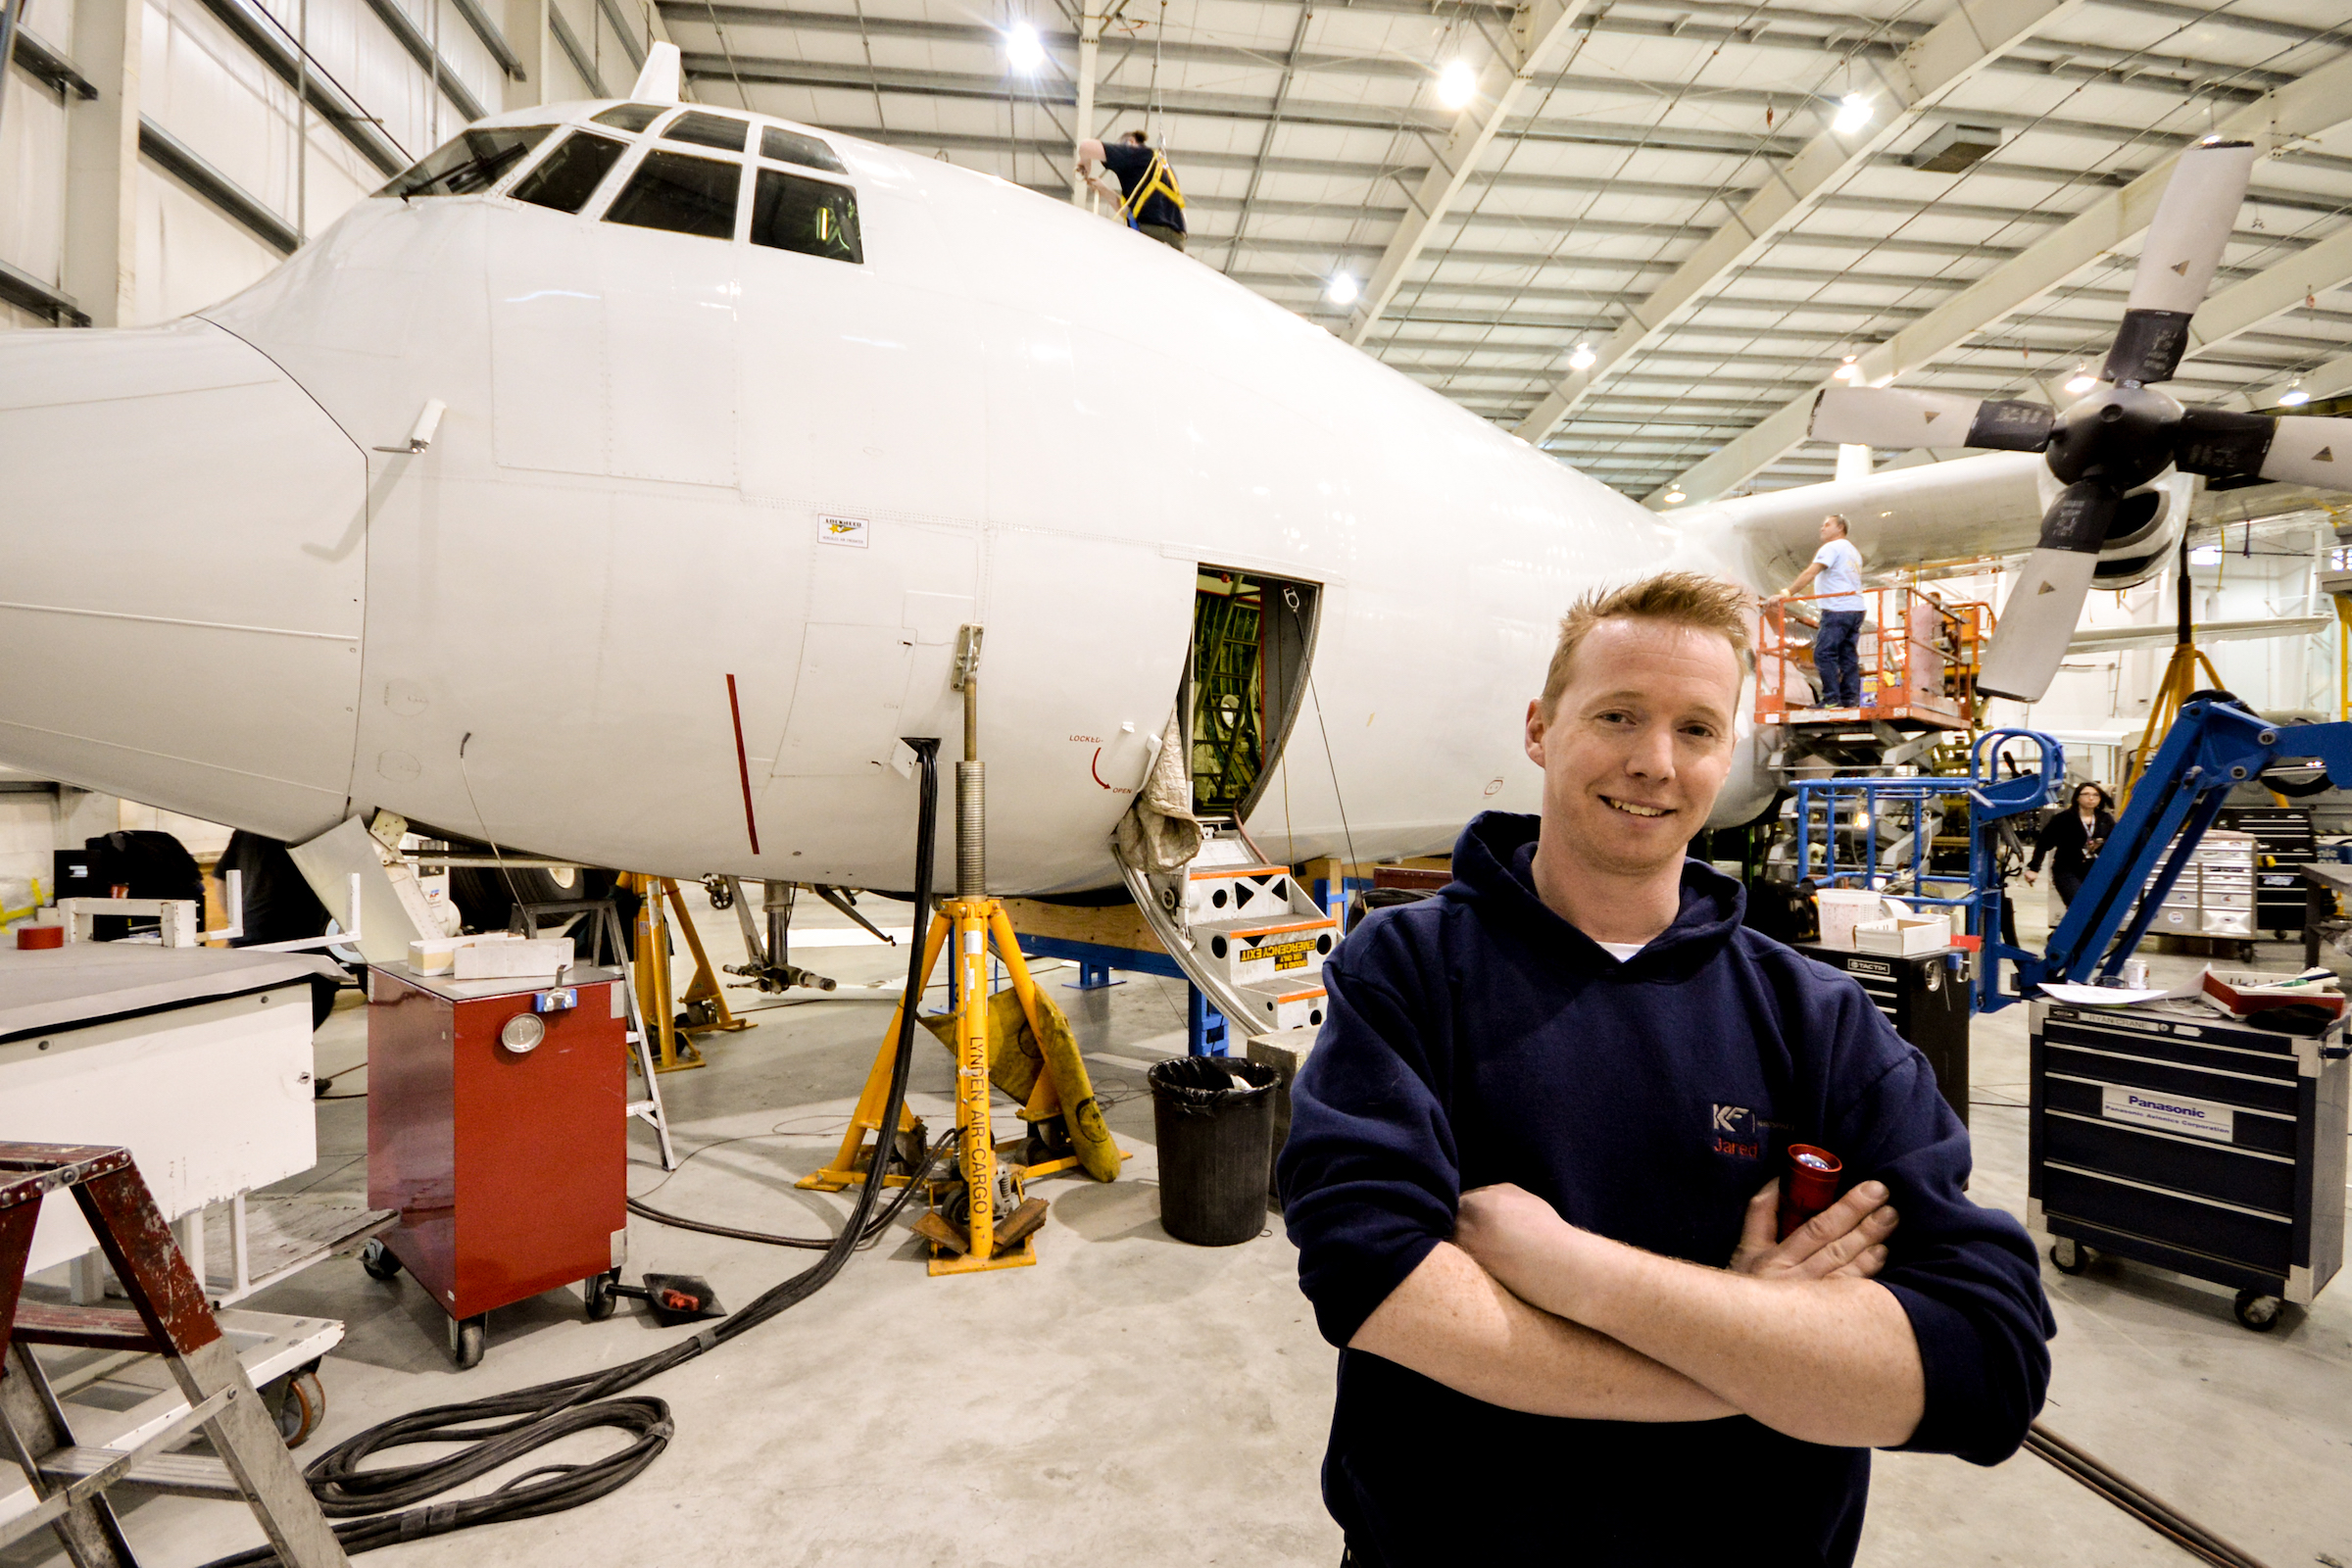 Man standing in front of an airplane being built in an hangar